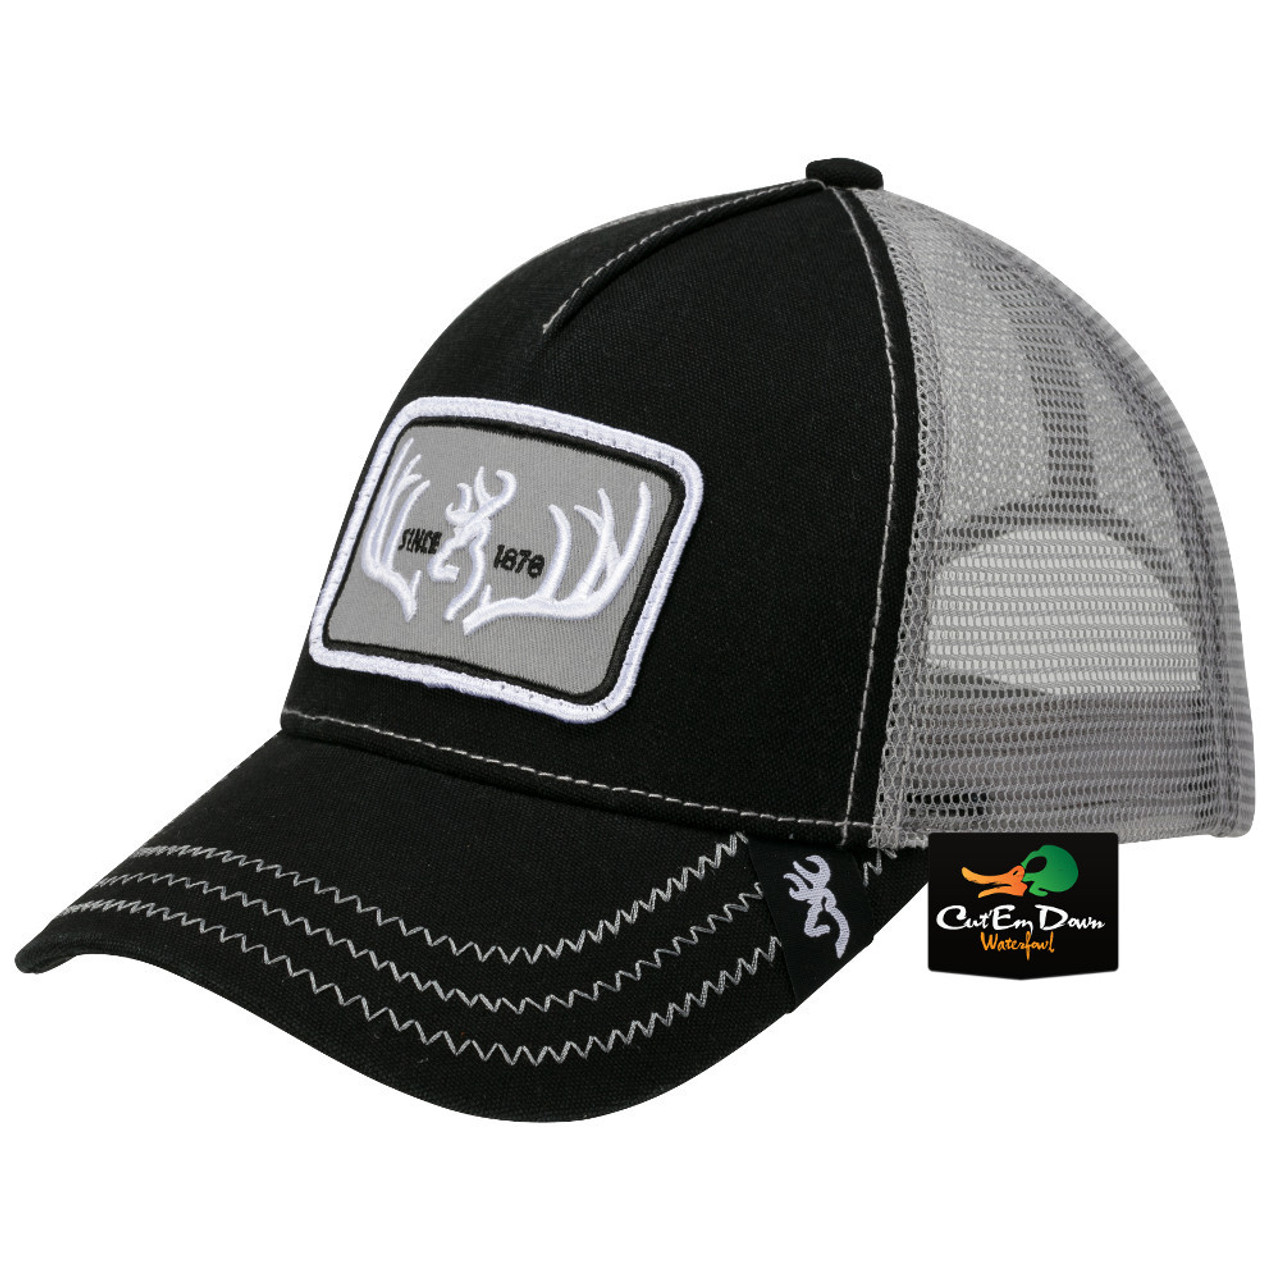 b8bef9ea205 Details about NEW BROWNING TYPICAL MESH BACK HAT BALL CAP BUCKMARK LOGO  BLACK   GRAY